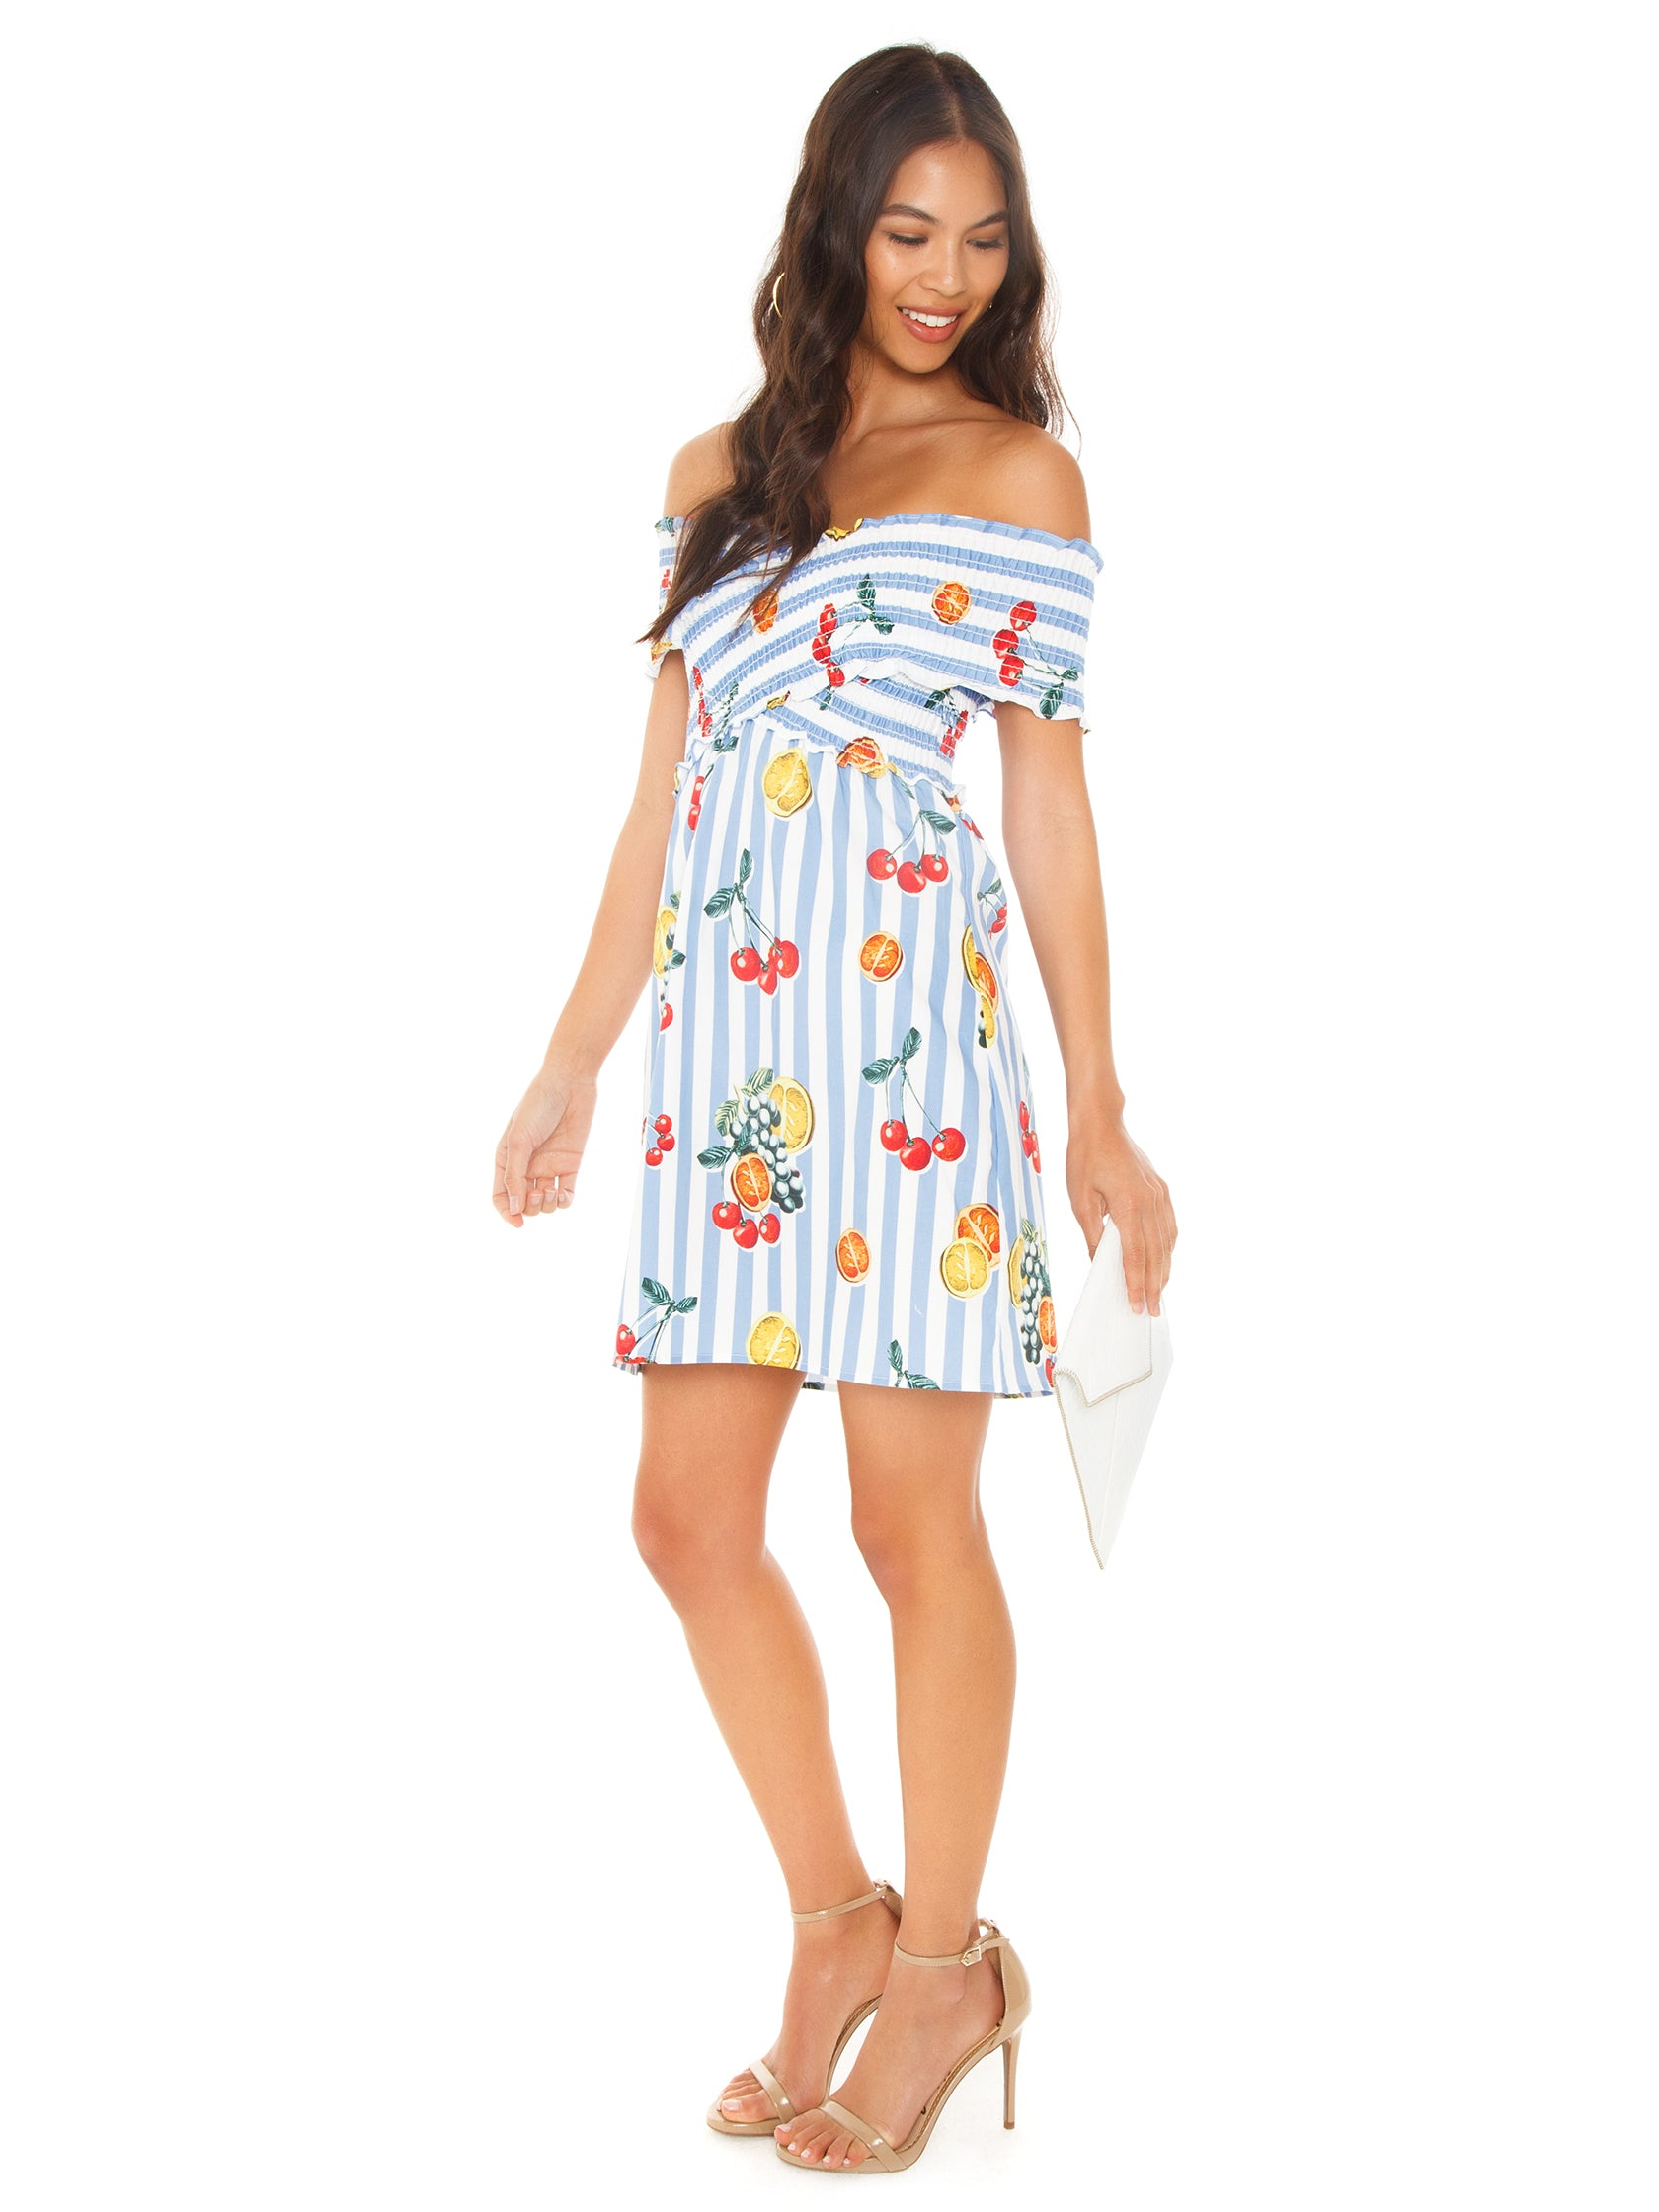 Woman wearing a dress rental from Show Me Your Mumu called Mandy Smocked Dress